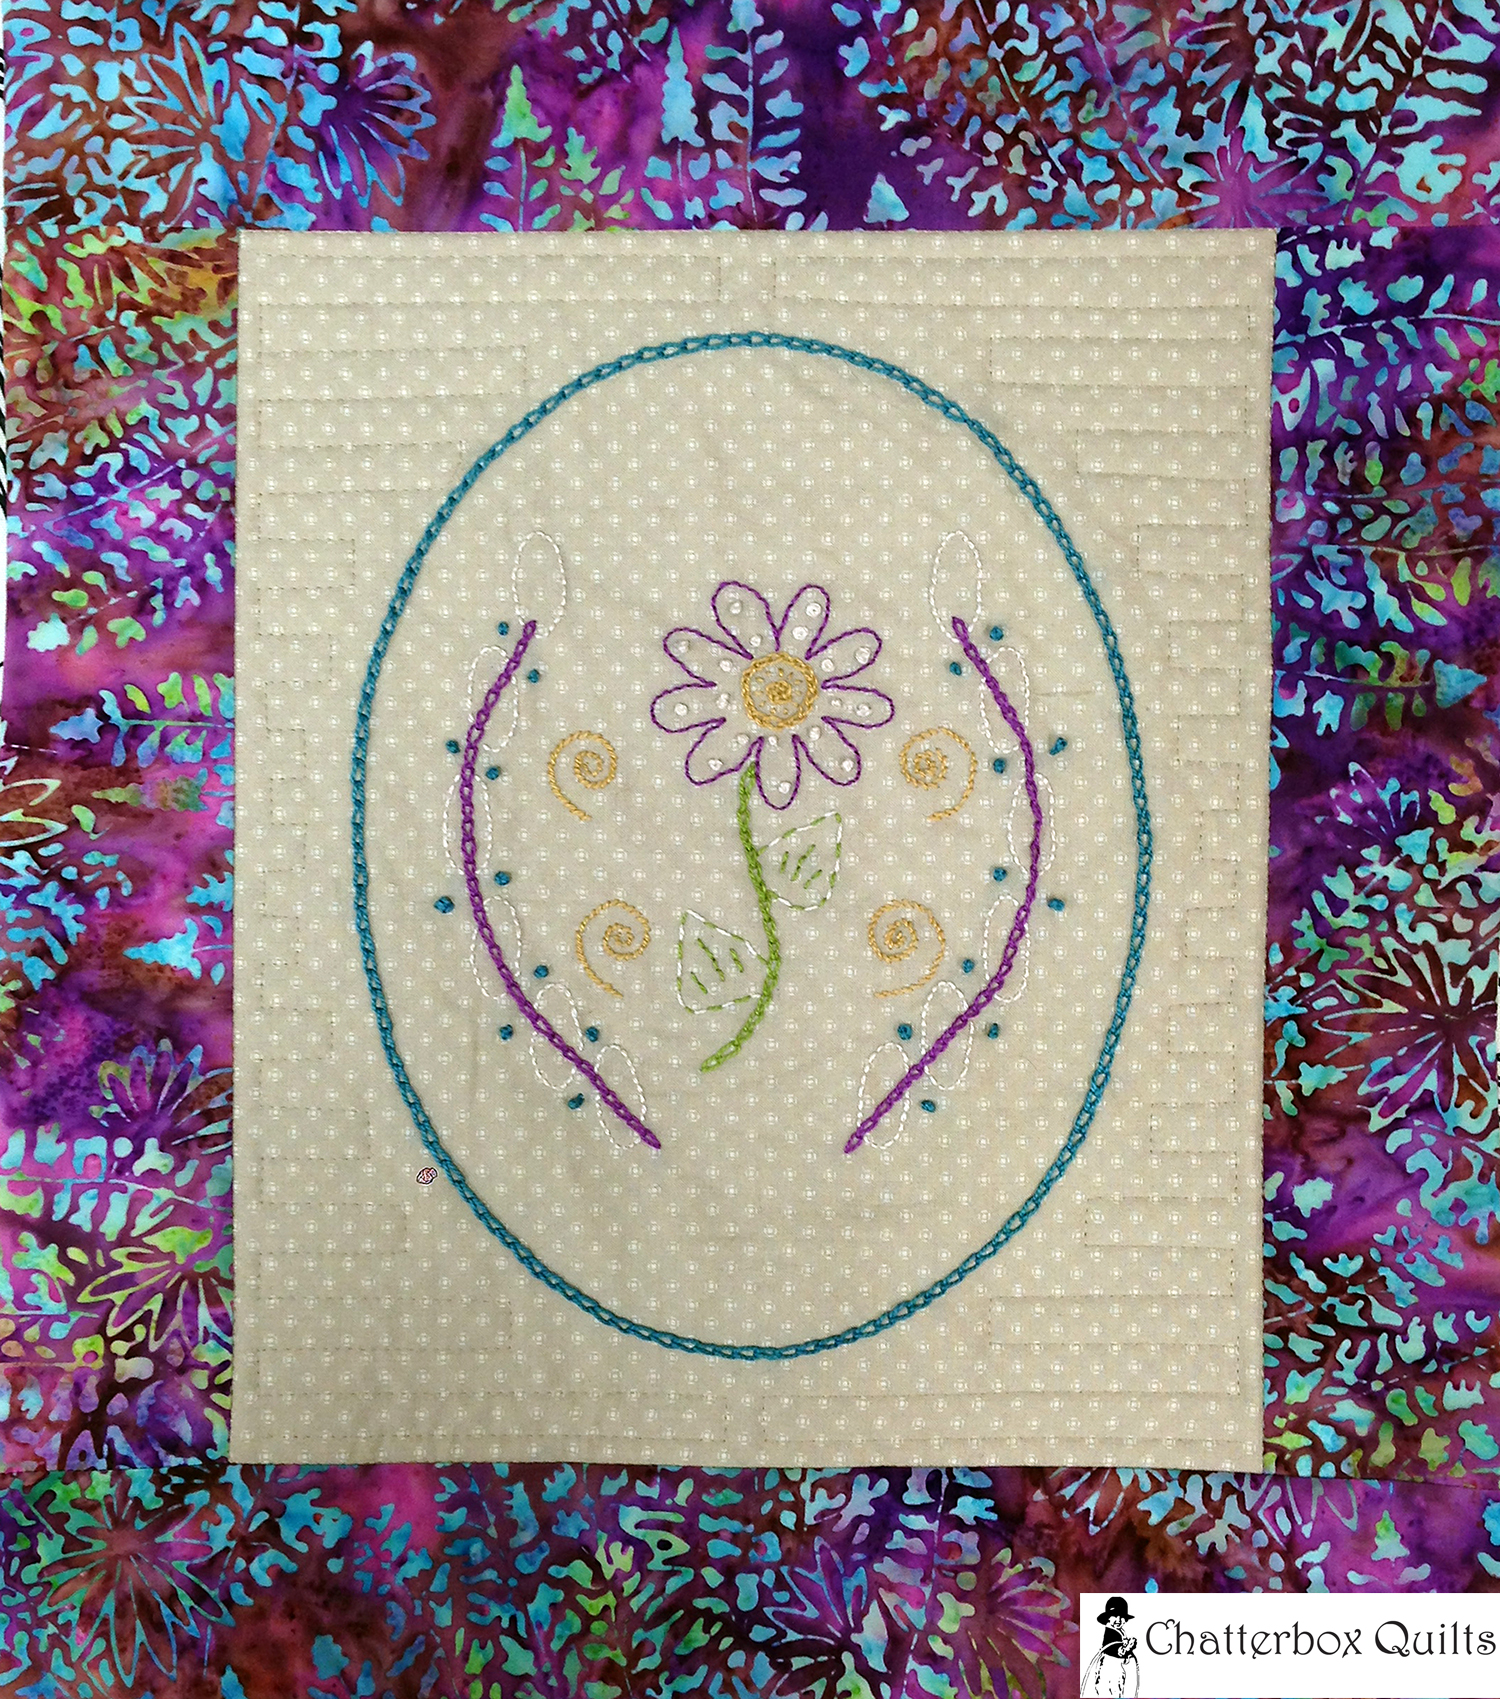 Floral Oval by Chatterbox Quilts in the Spring 2015 issue of Quilter's Connection Magazine